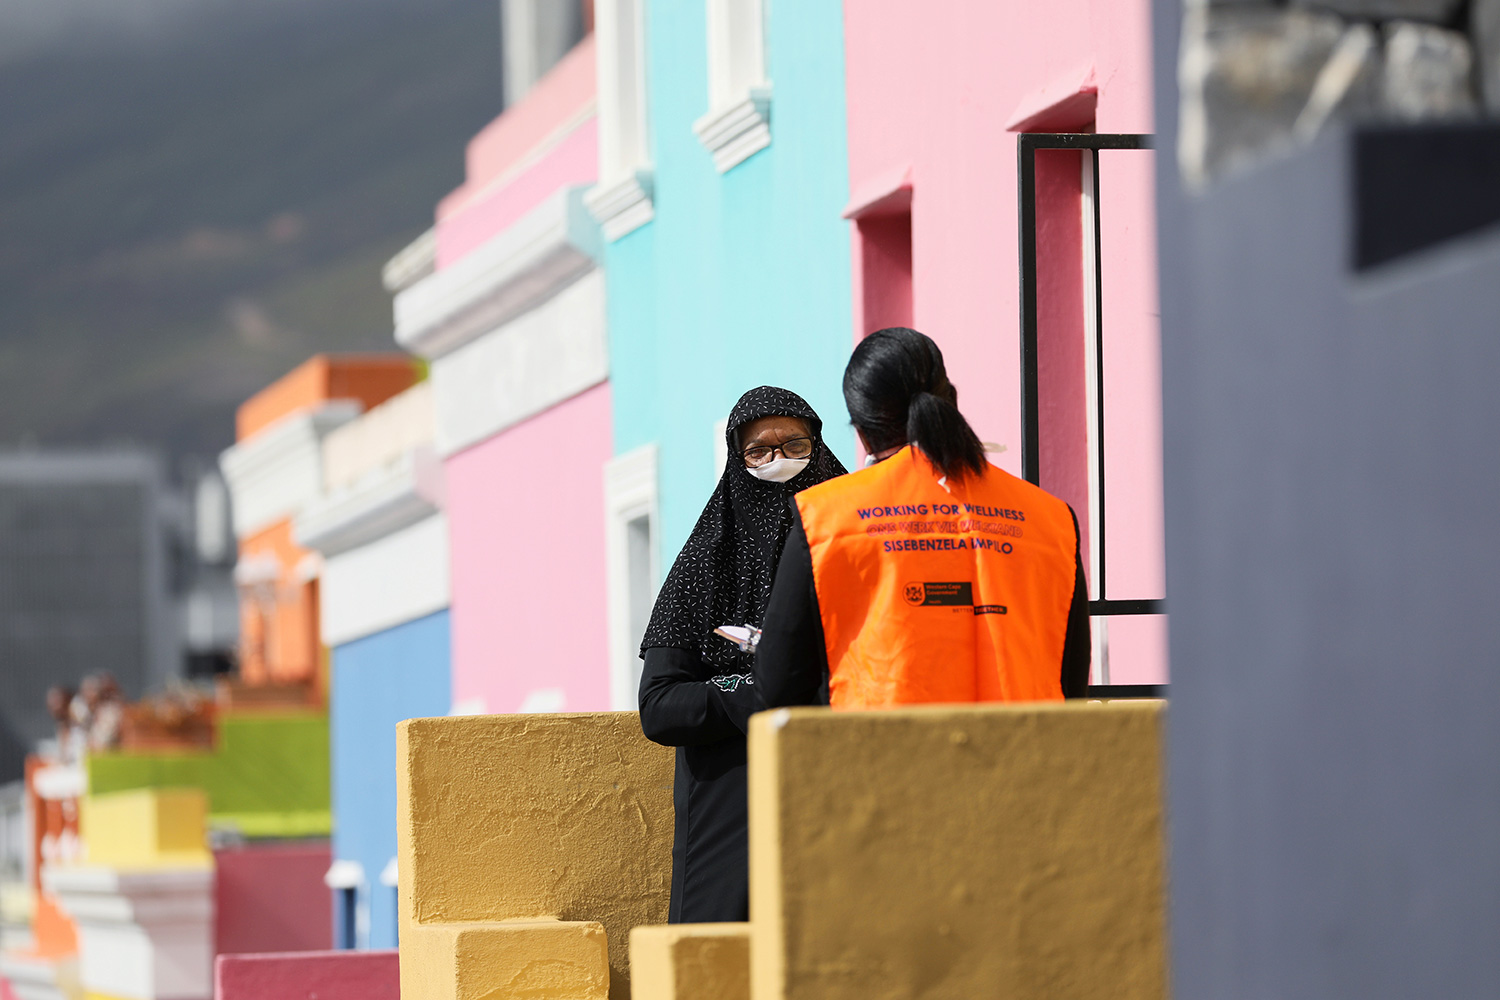 The photo shows the health care worker from behind speaking to a women wearing a head scarf and mask and facing the camera. They are standing on the front steps of a series of houses that are brightly colored green and orange and pink and purple pastels.